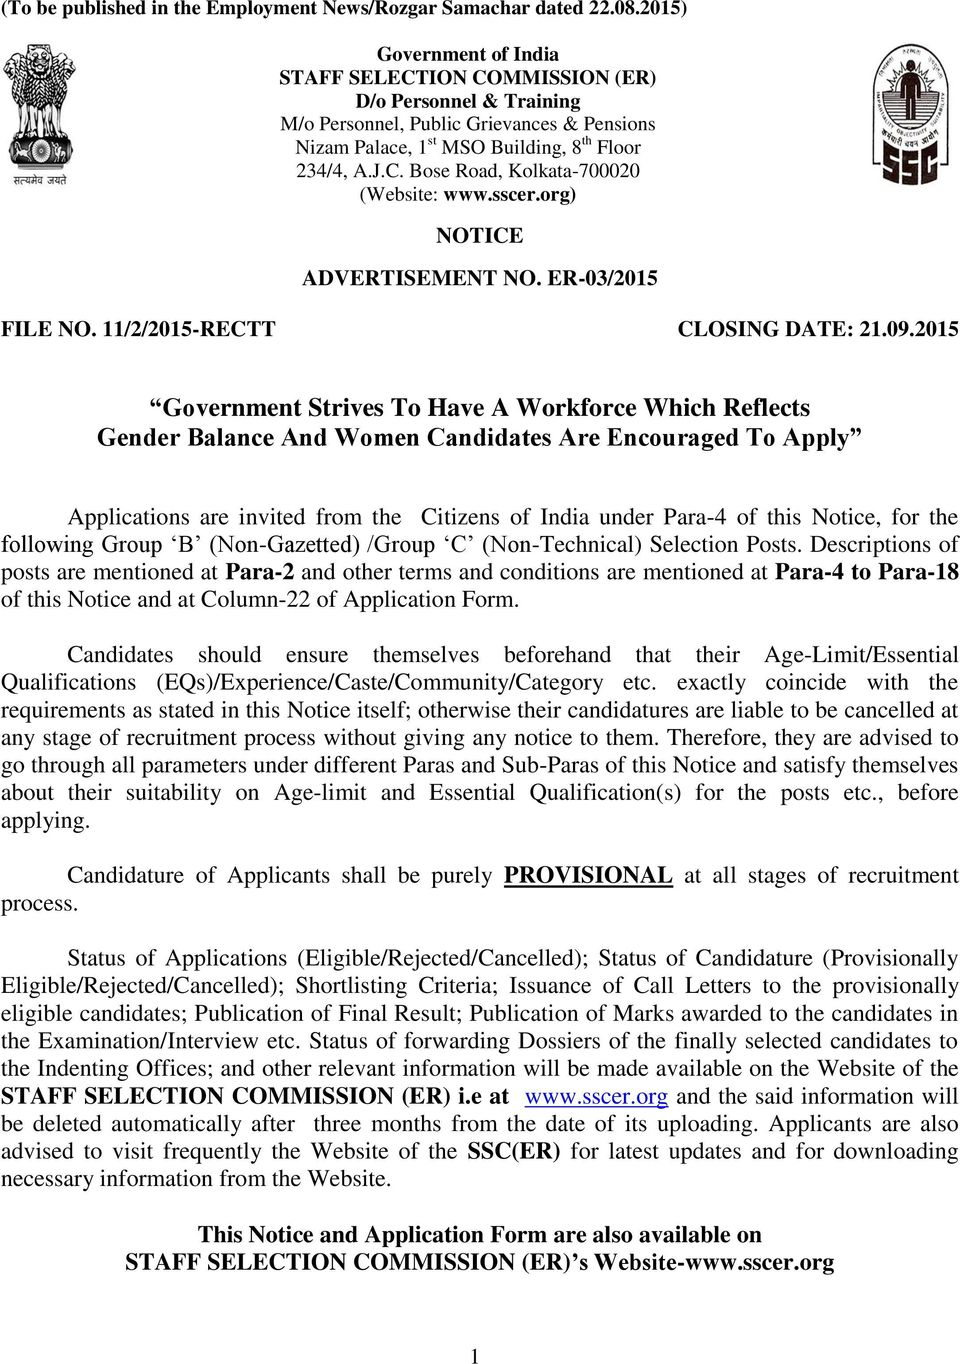 sscer.org) NOTICE ADVERTISEMENT NO. ER-03/2015 FILE NO. 11/2/2015-RECTT CLOSING DATE: 21.09.